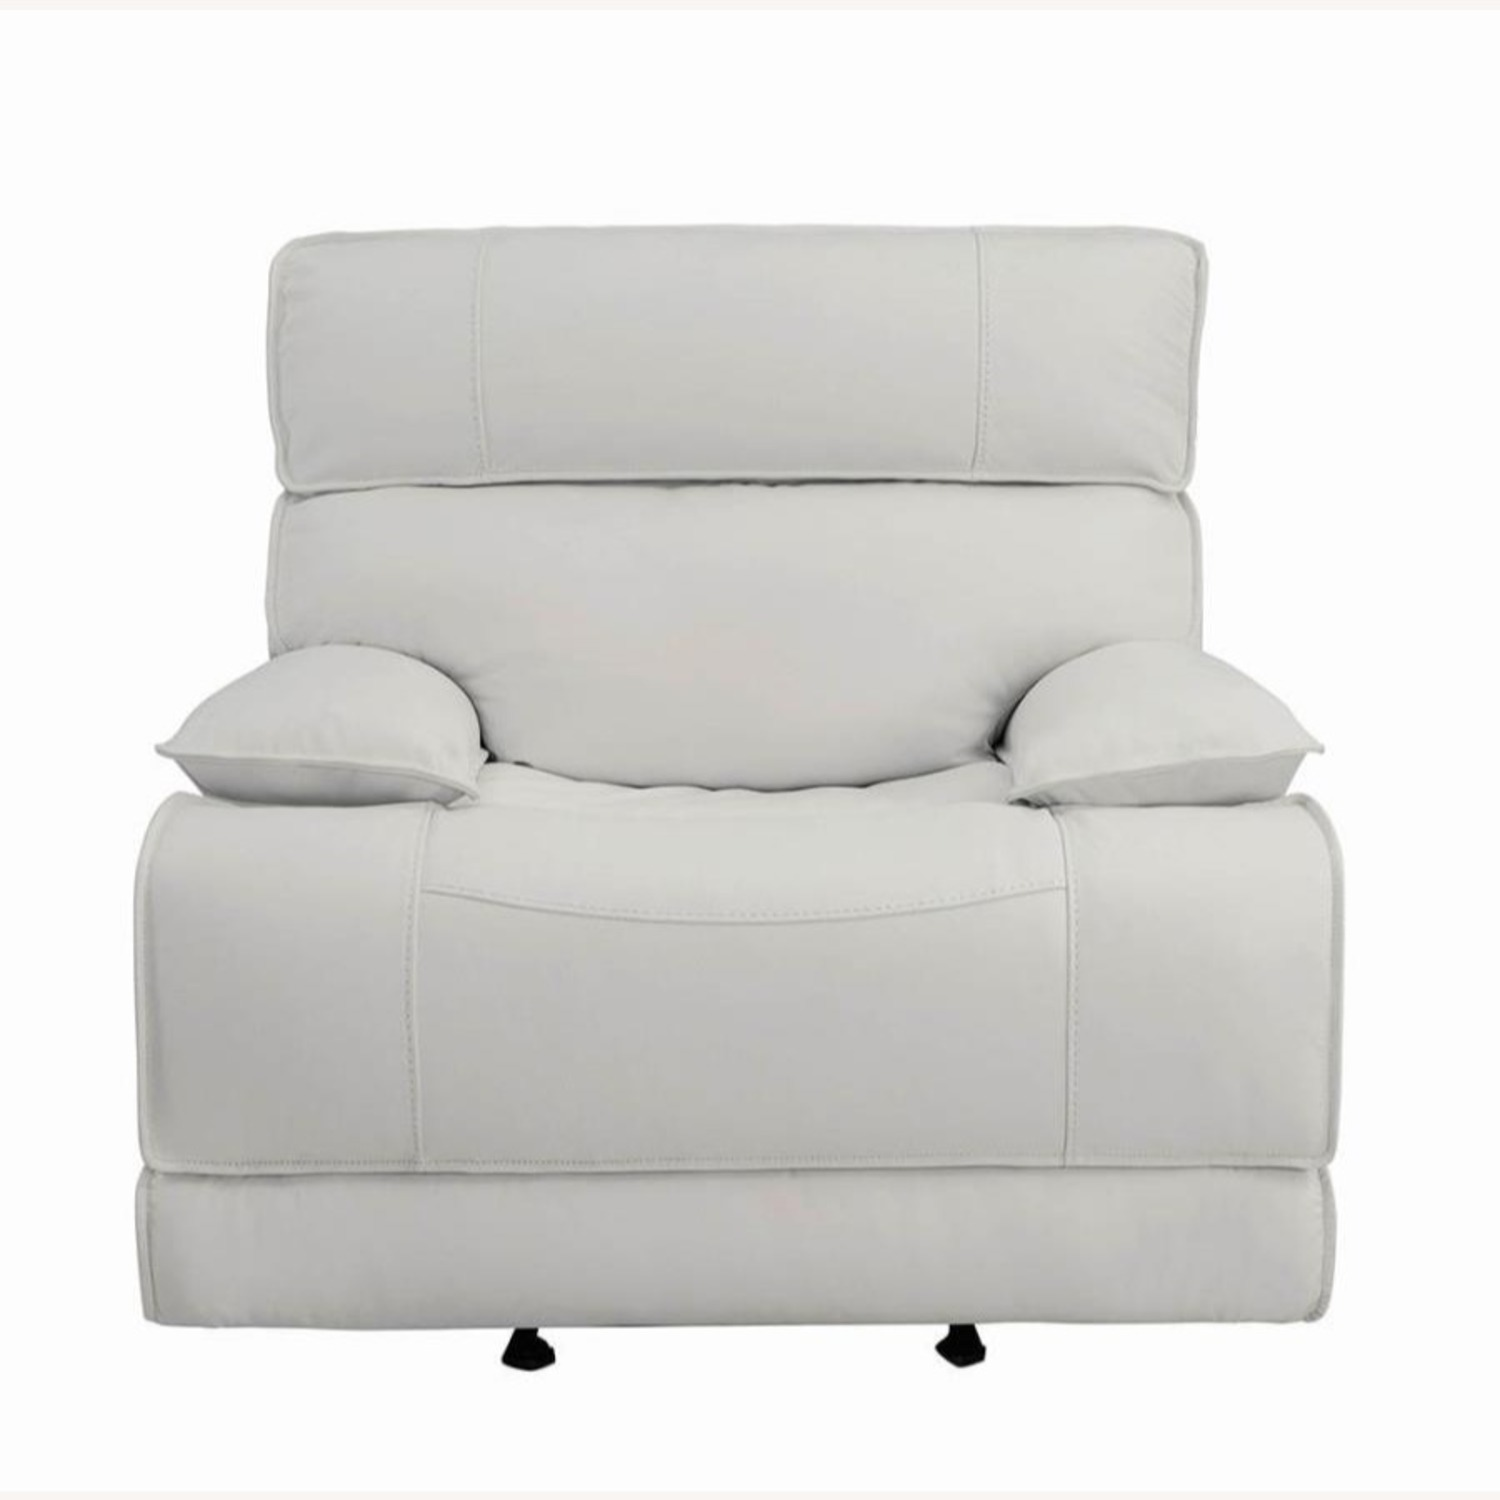 Power Glider Recliner Upholstered In White Leather - image-2